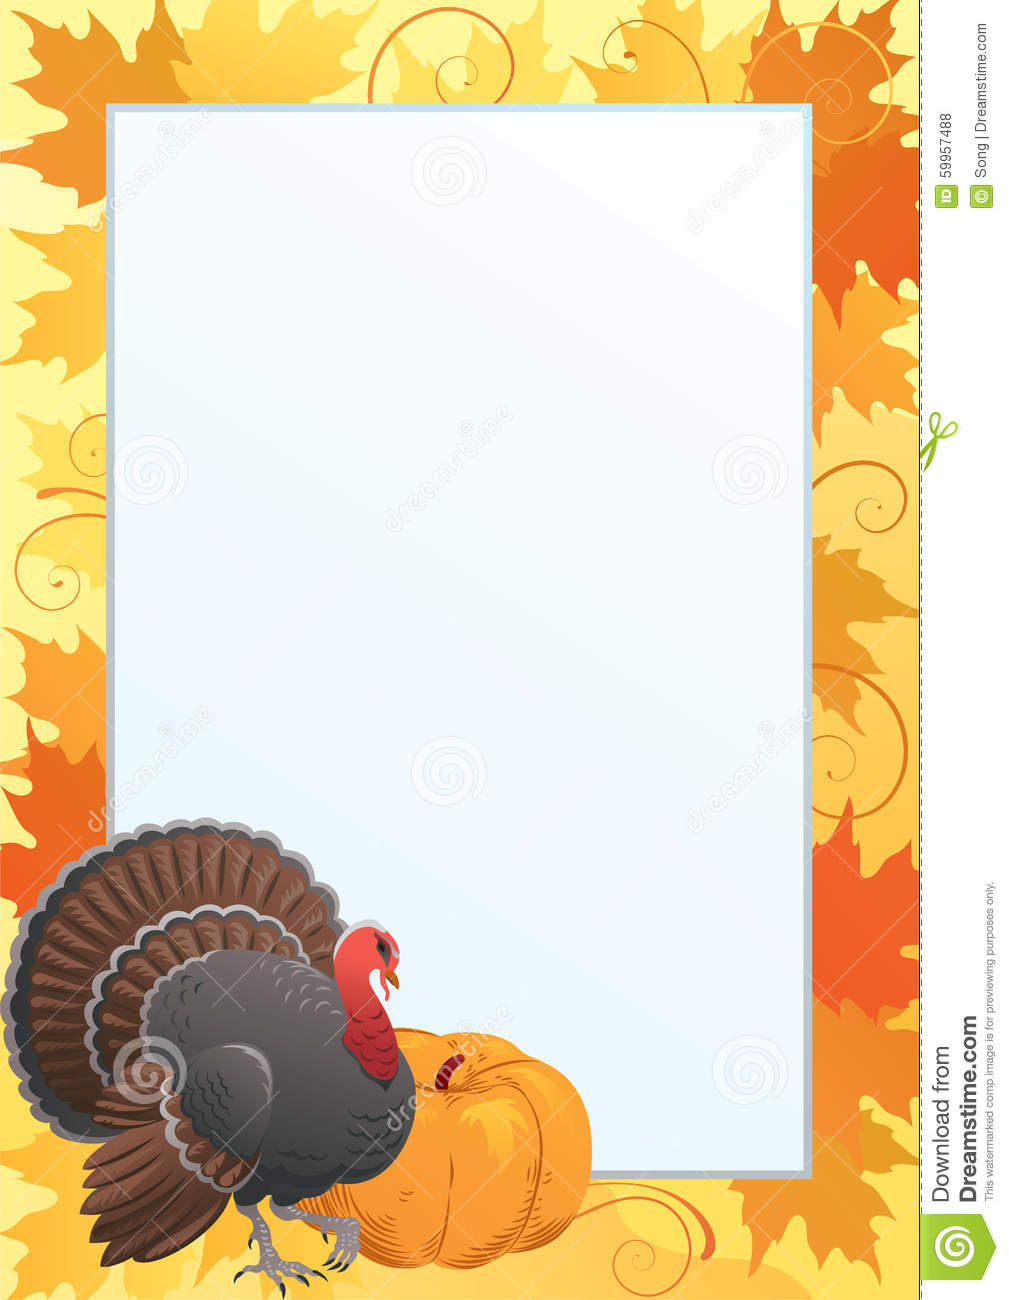 thanksgiving frame stock vector image 59957488 clip art of turkey and pumpkin clipart of turkeys